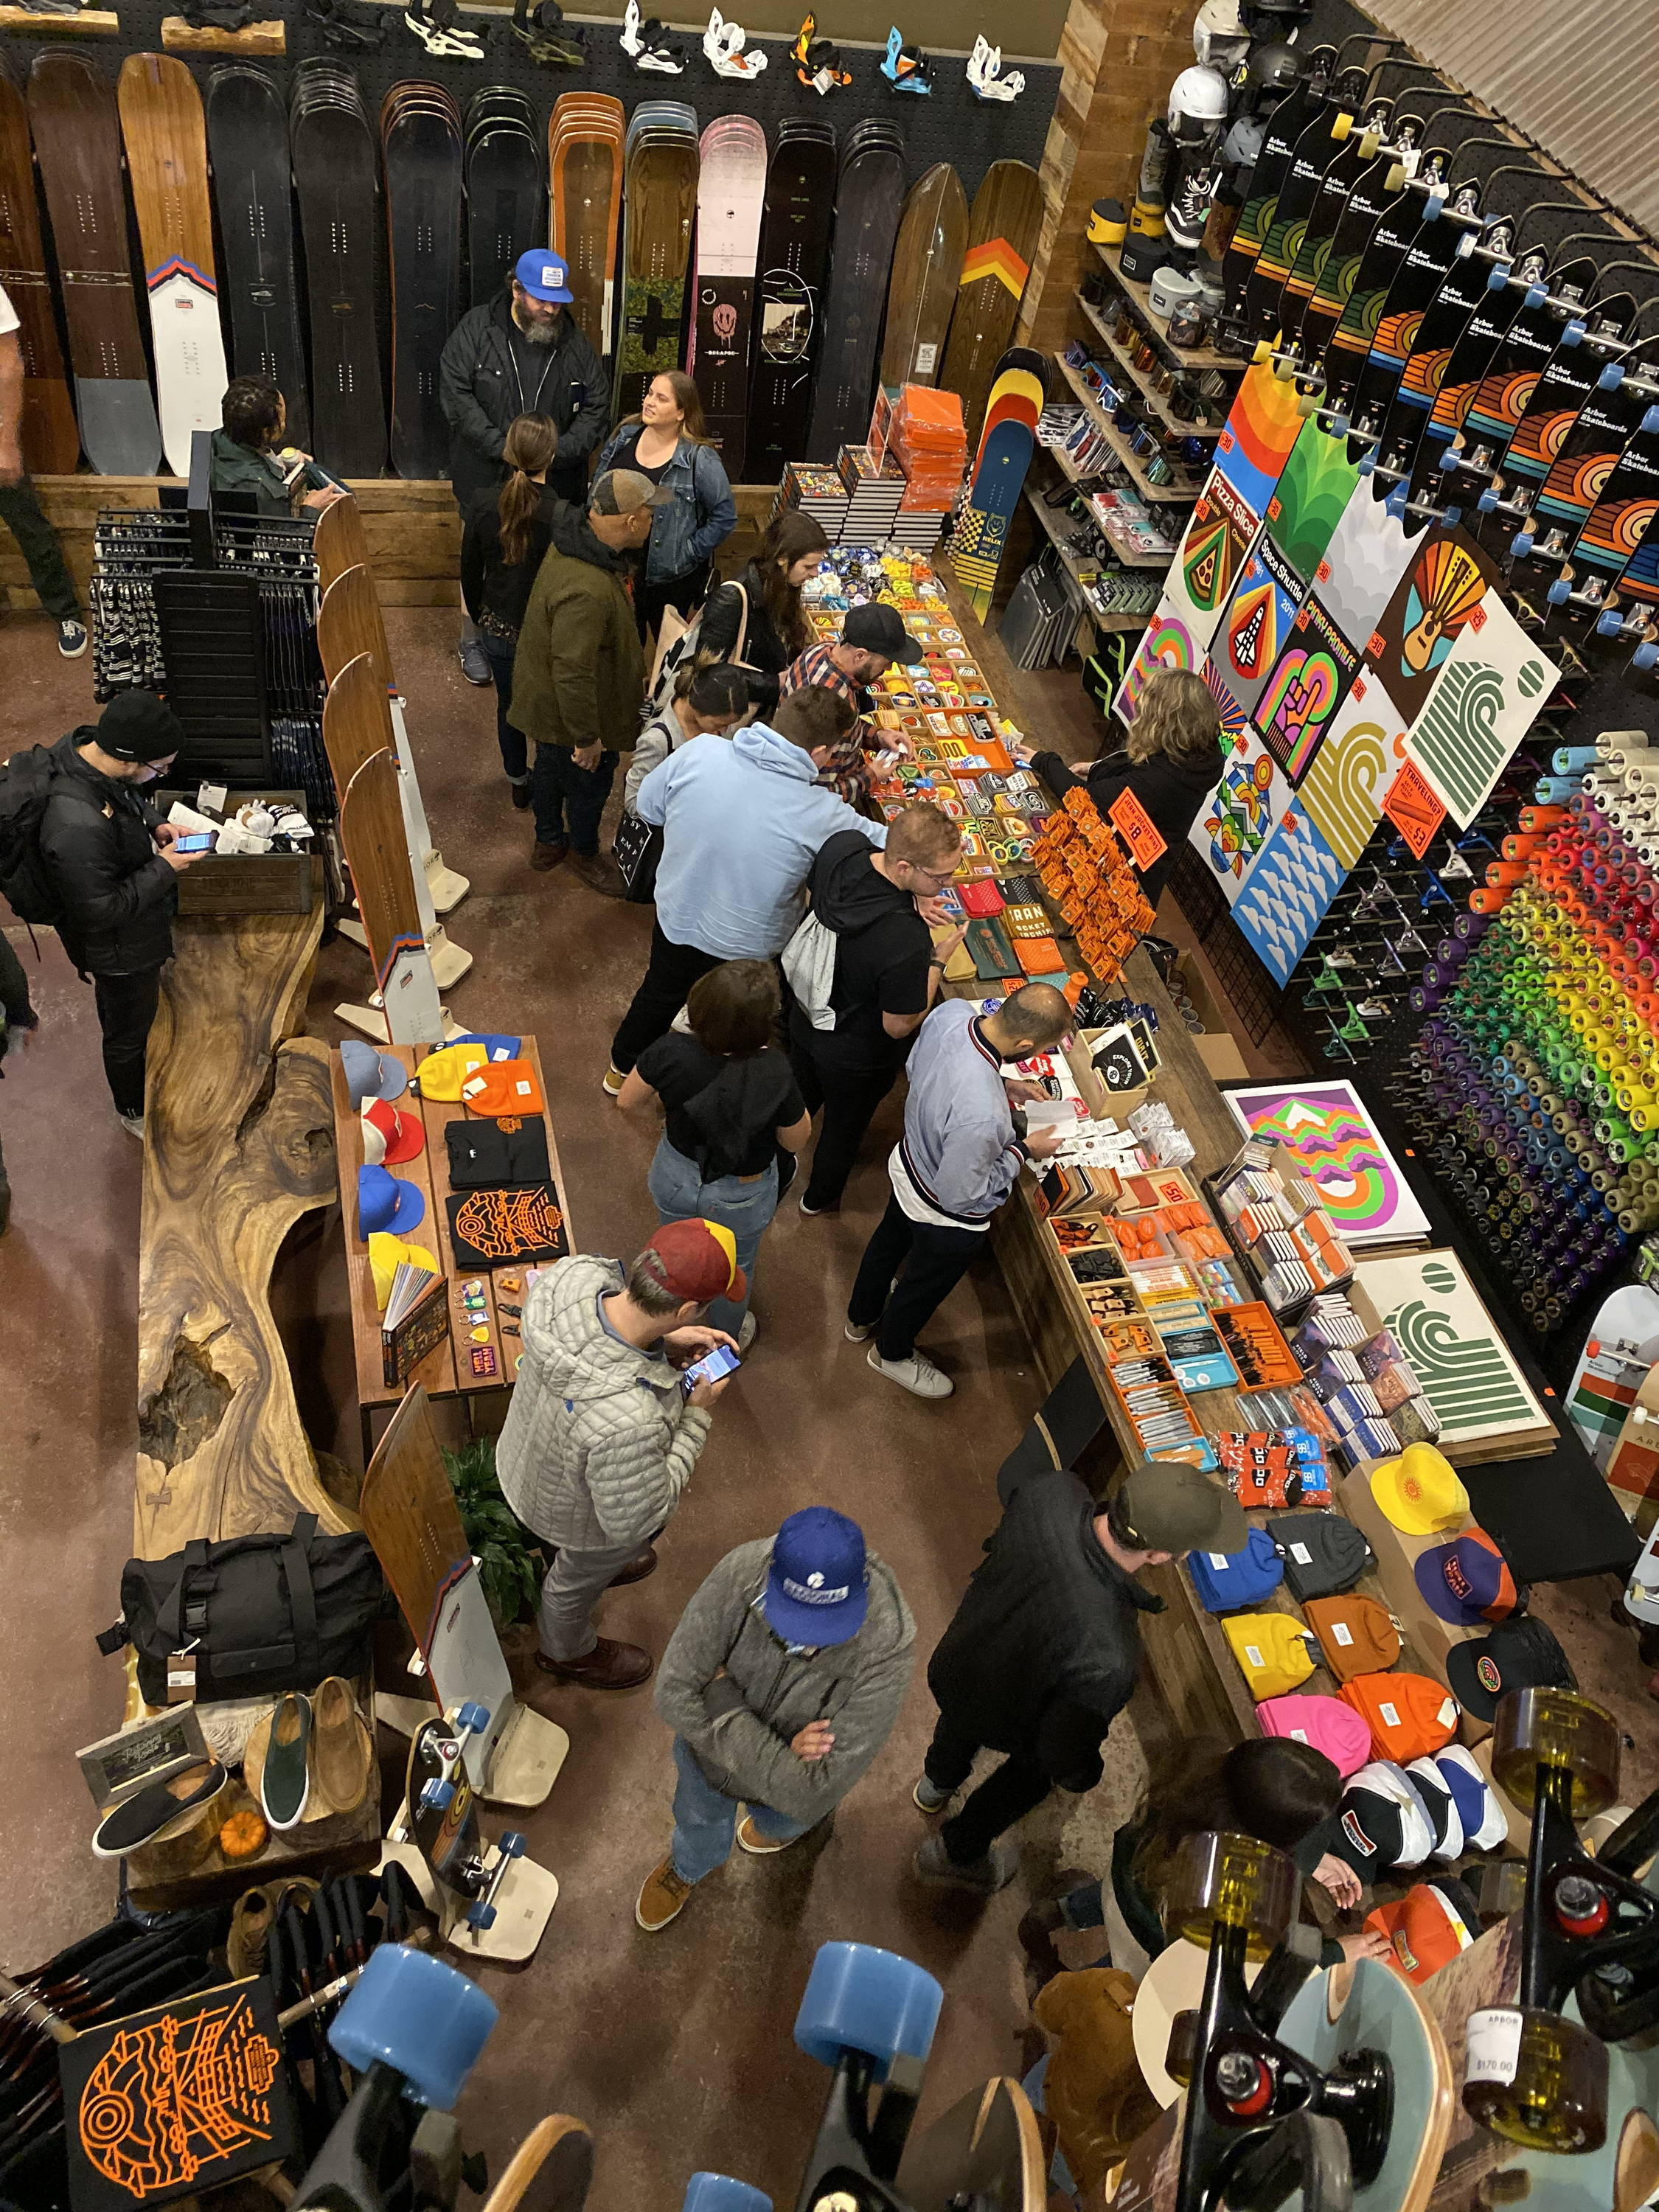 Aaron Draplin Design Shop Takeover at Arbor Venice